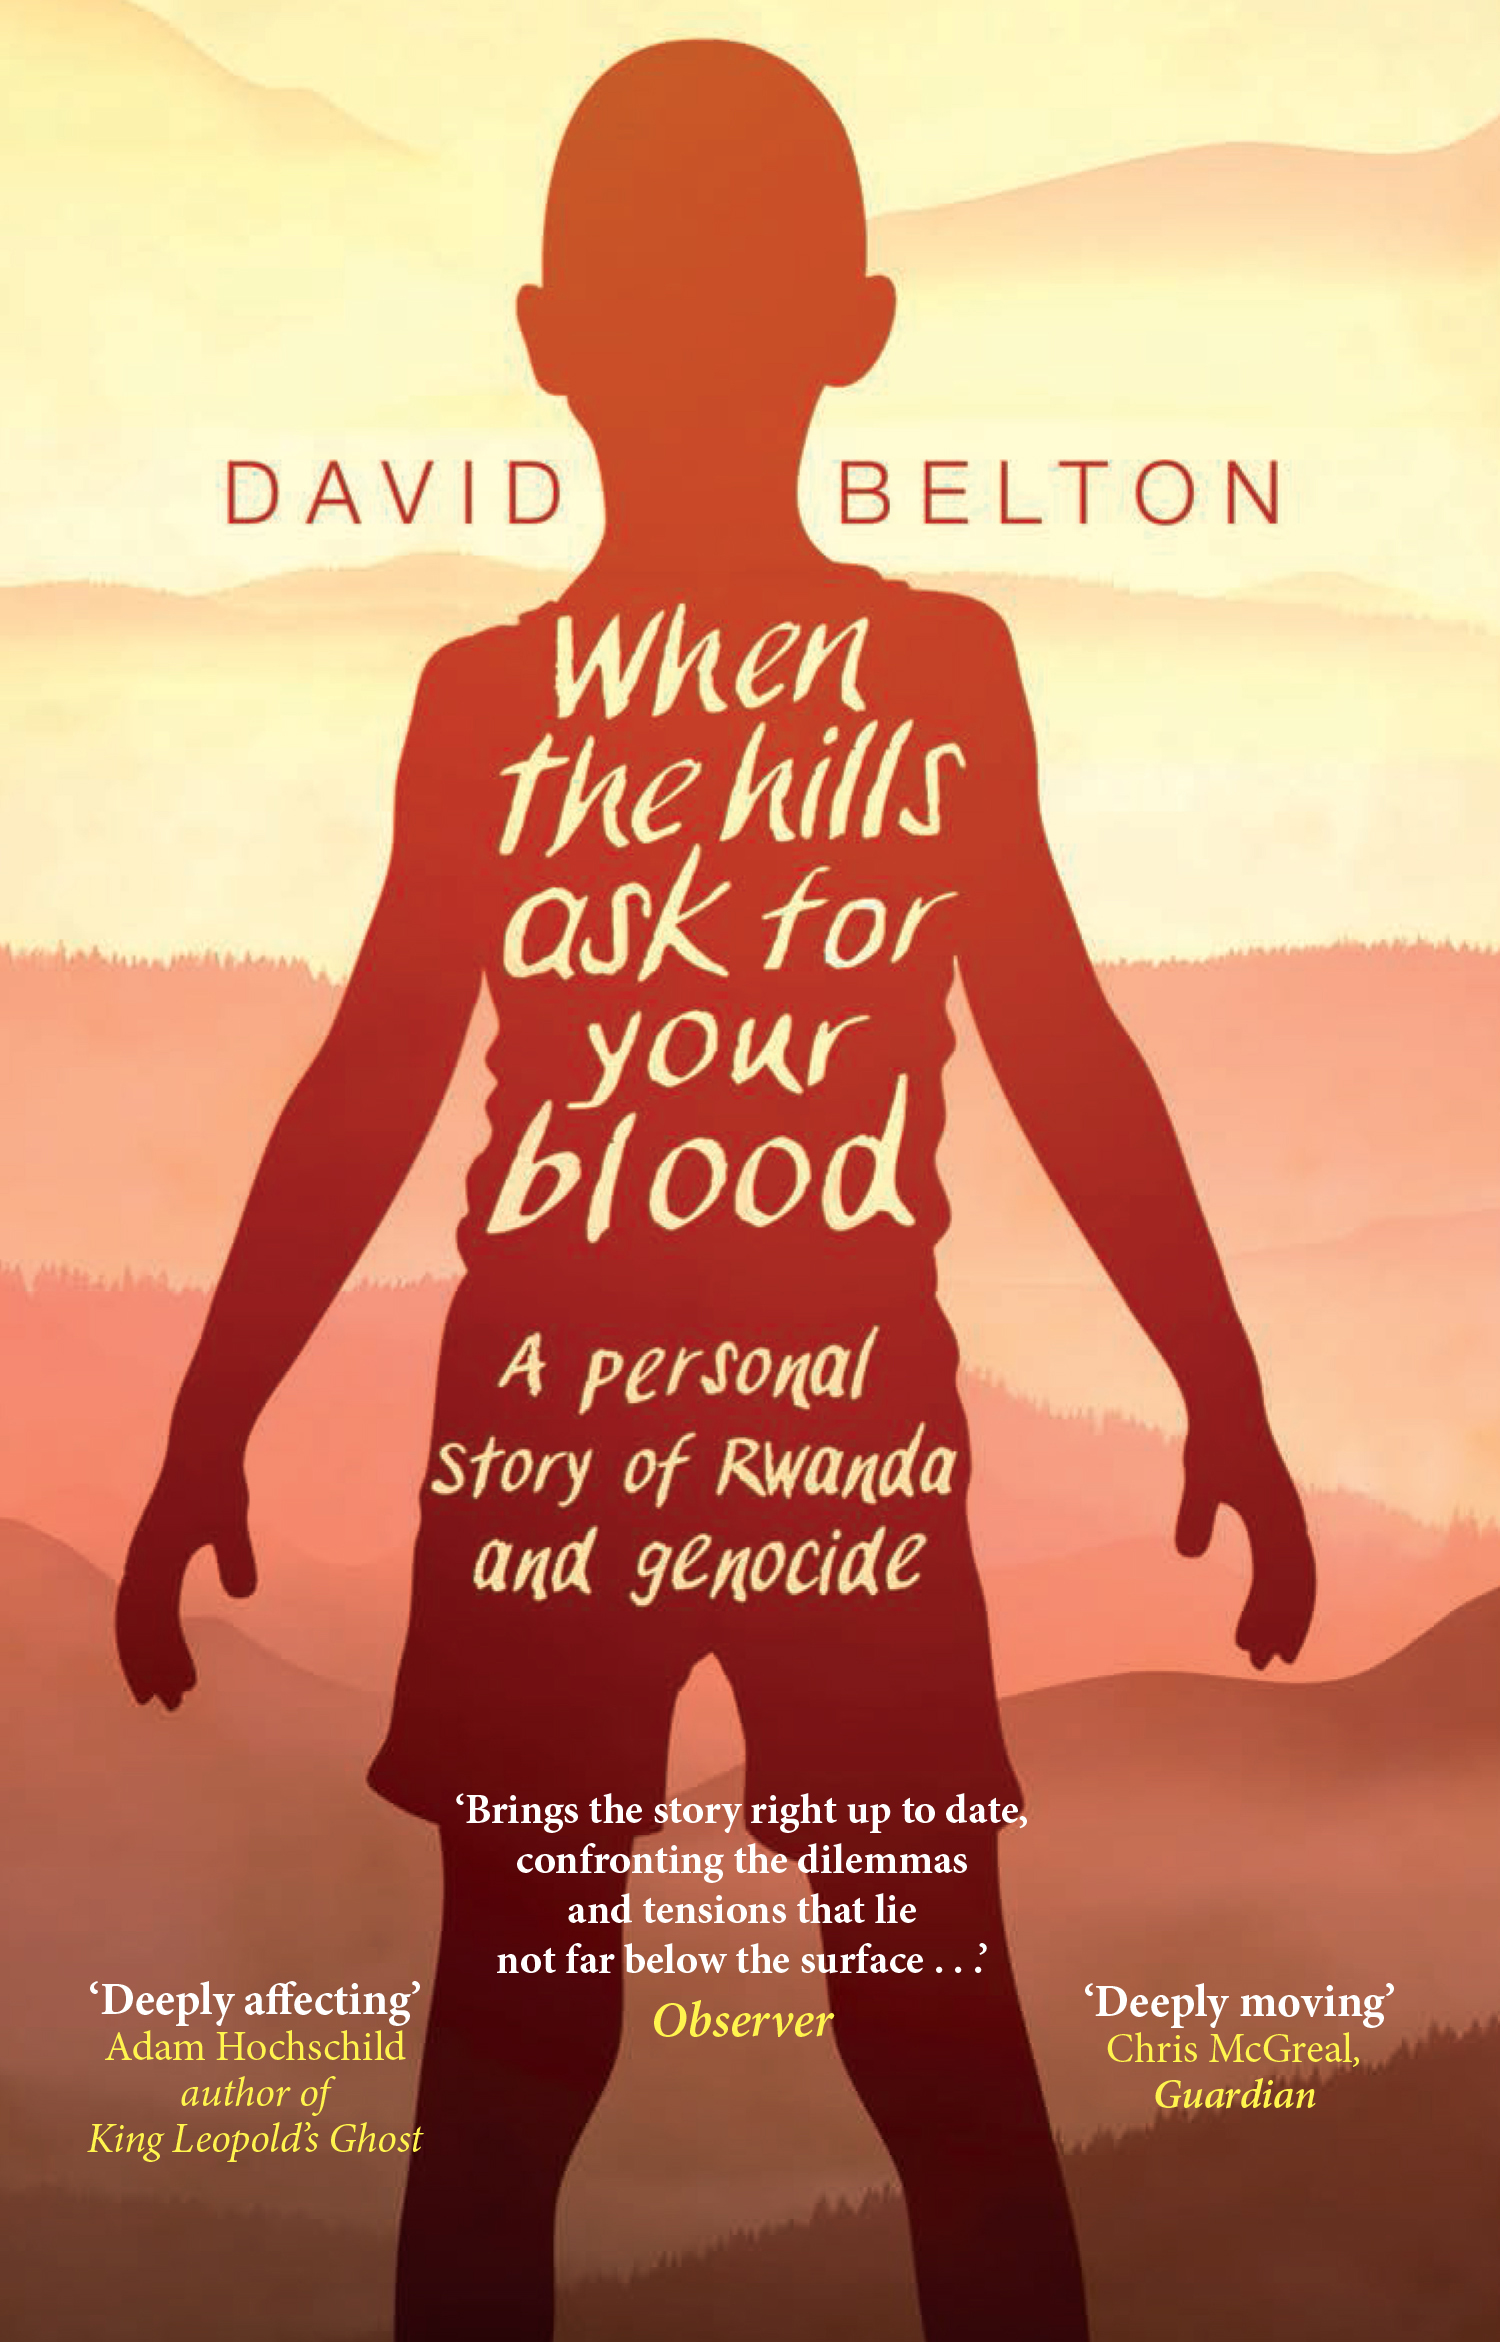 WHEN THE HILLS ASK FOR BLOOD by Davi